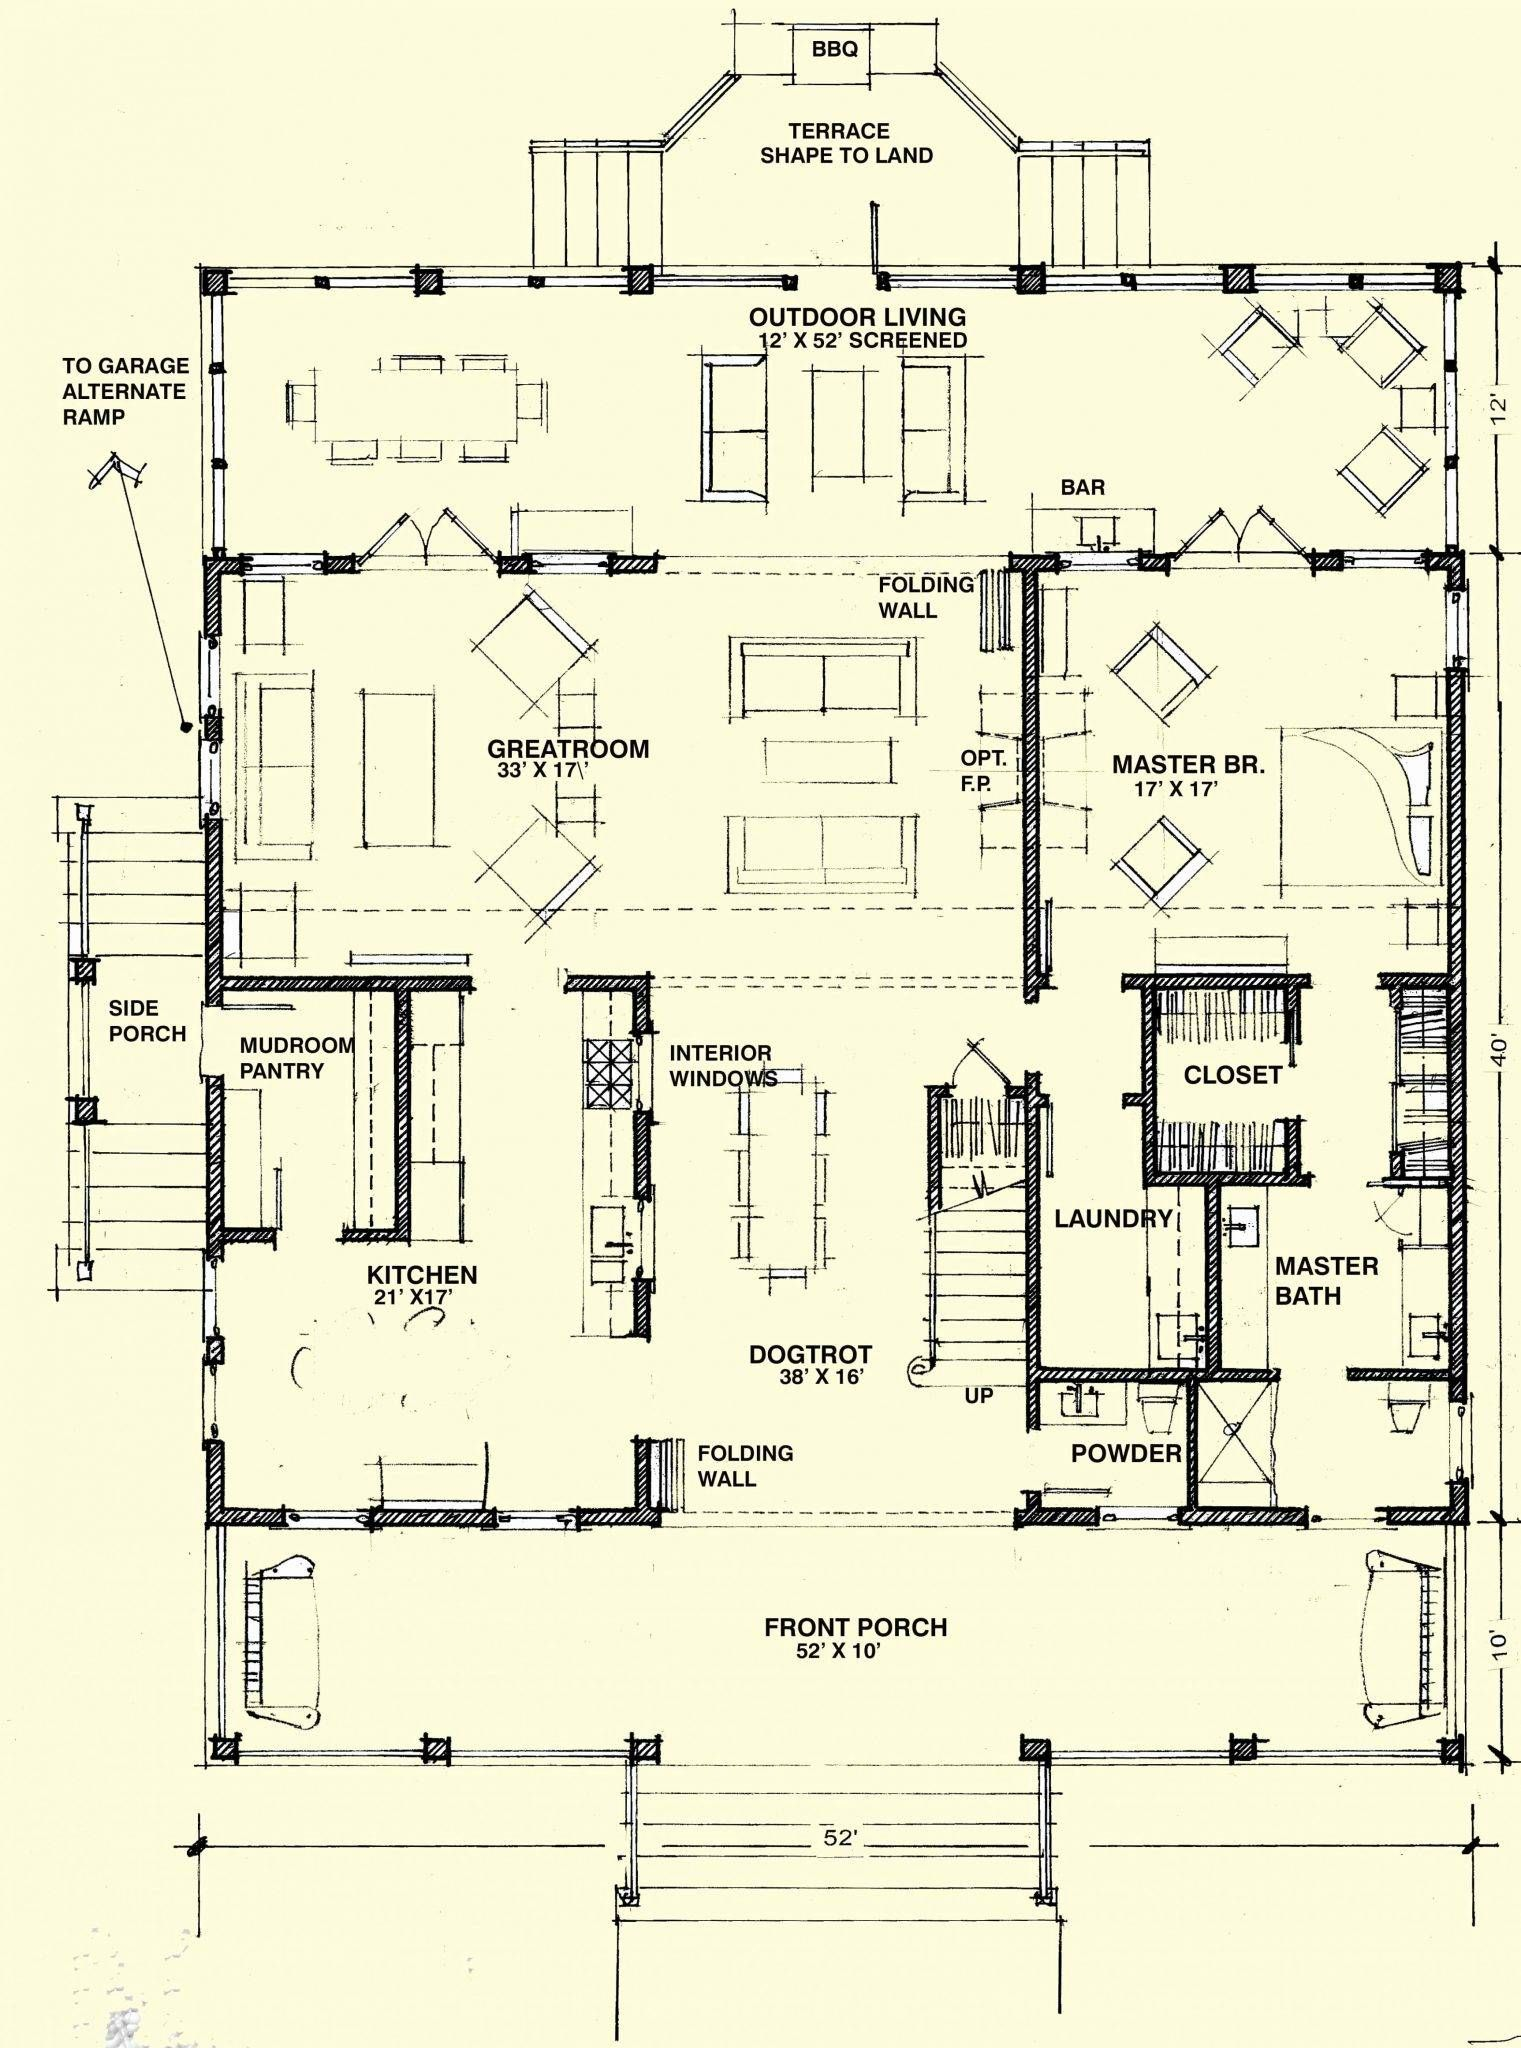 Dogtrot house plans lovely modern dog trot house plans luxury